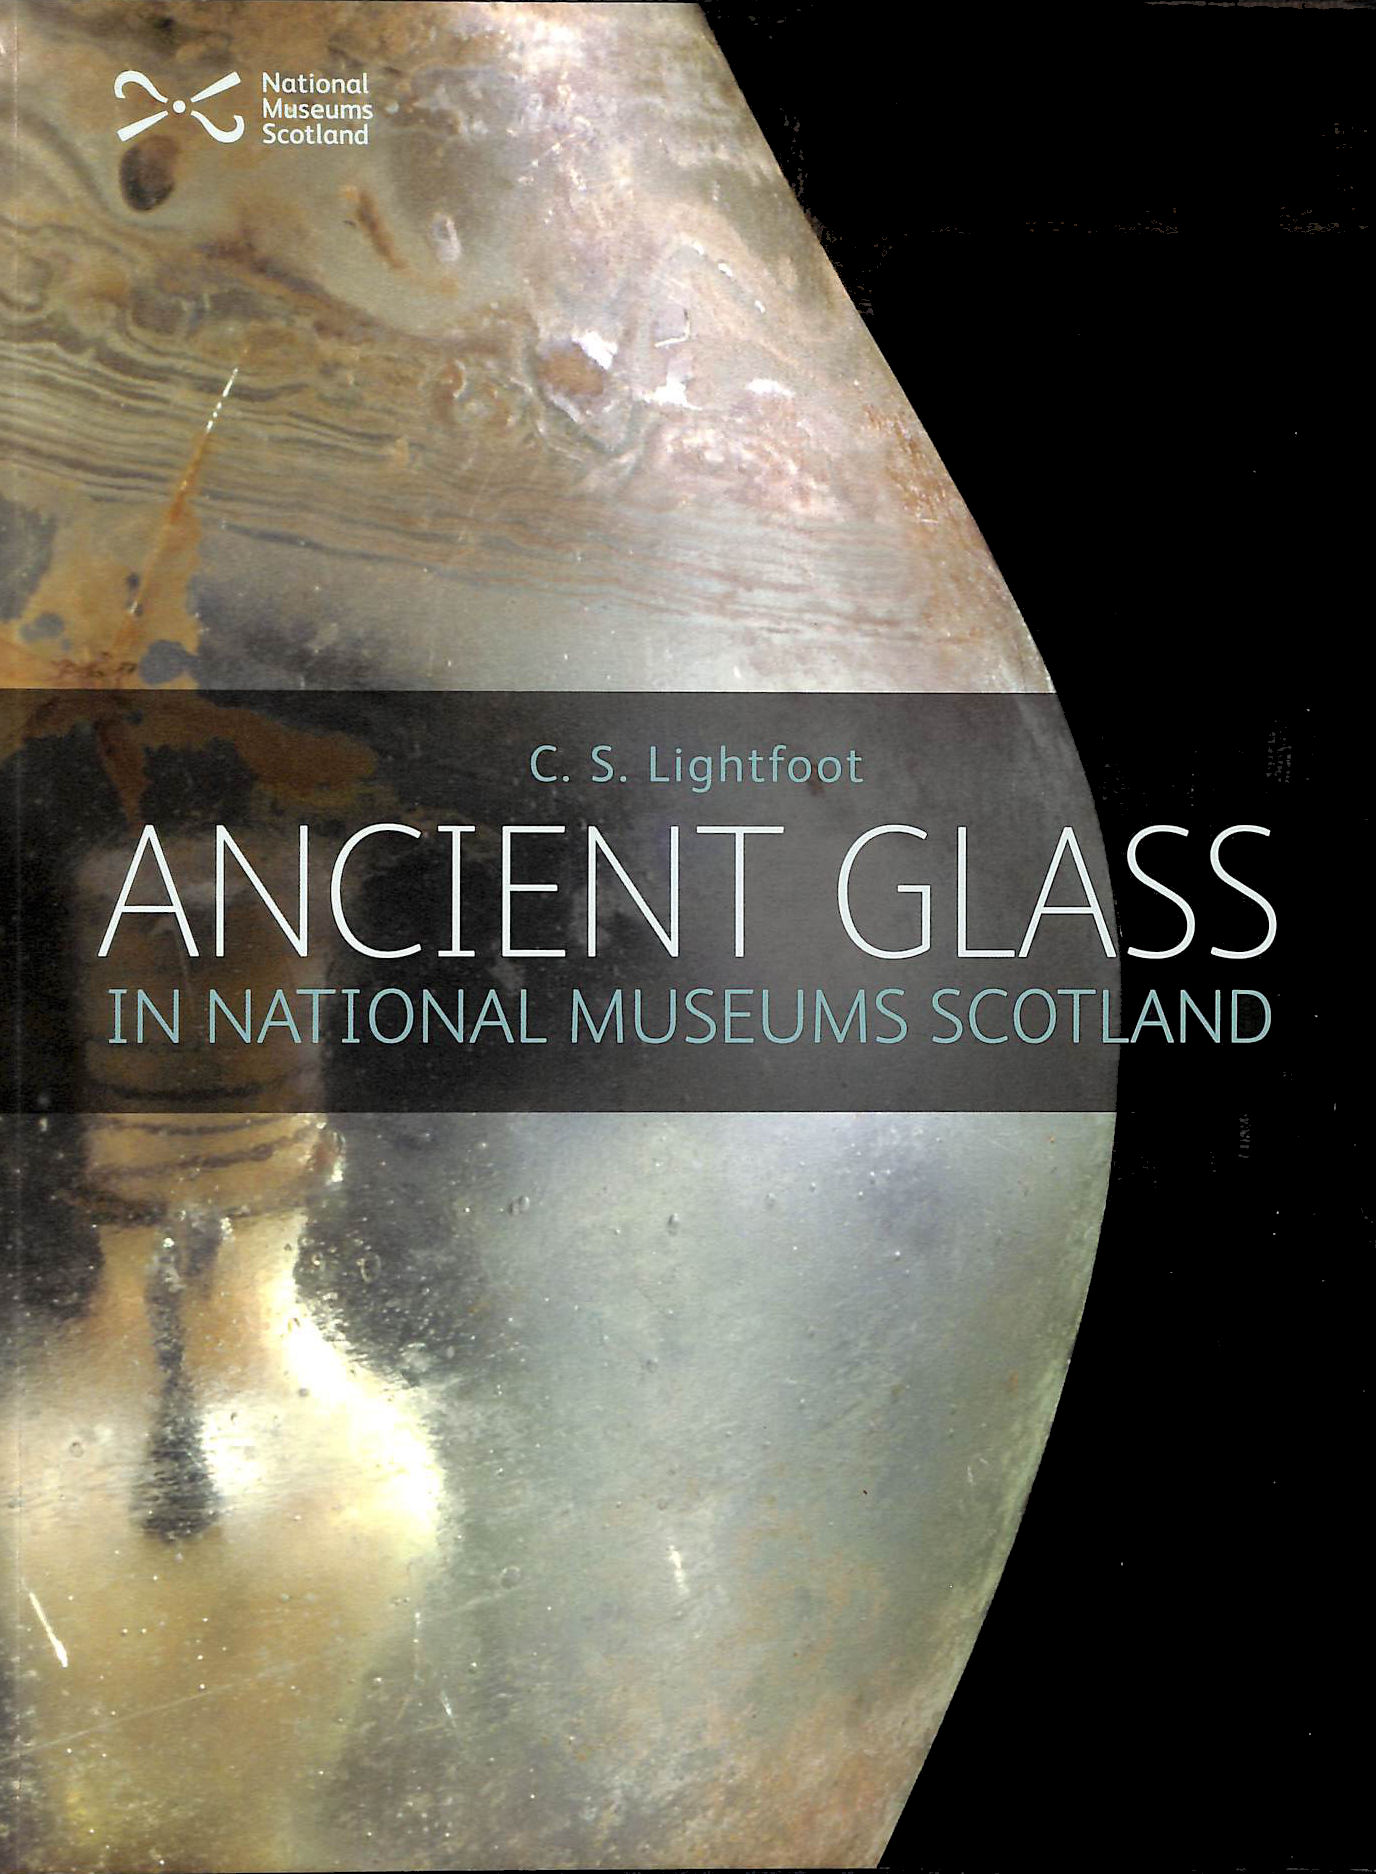 Image for Ancient Glass in the National Museums of Scotland: in National Museums Scotland (Reference)